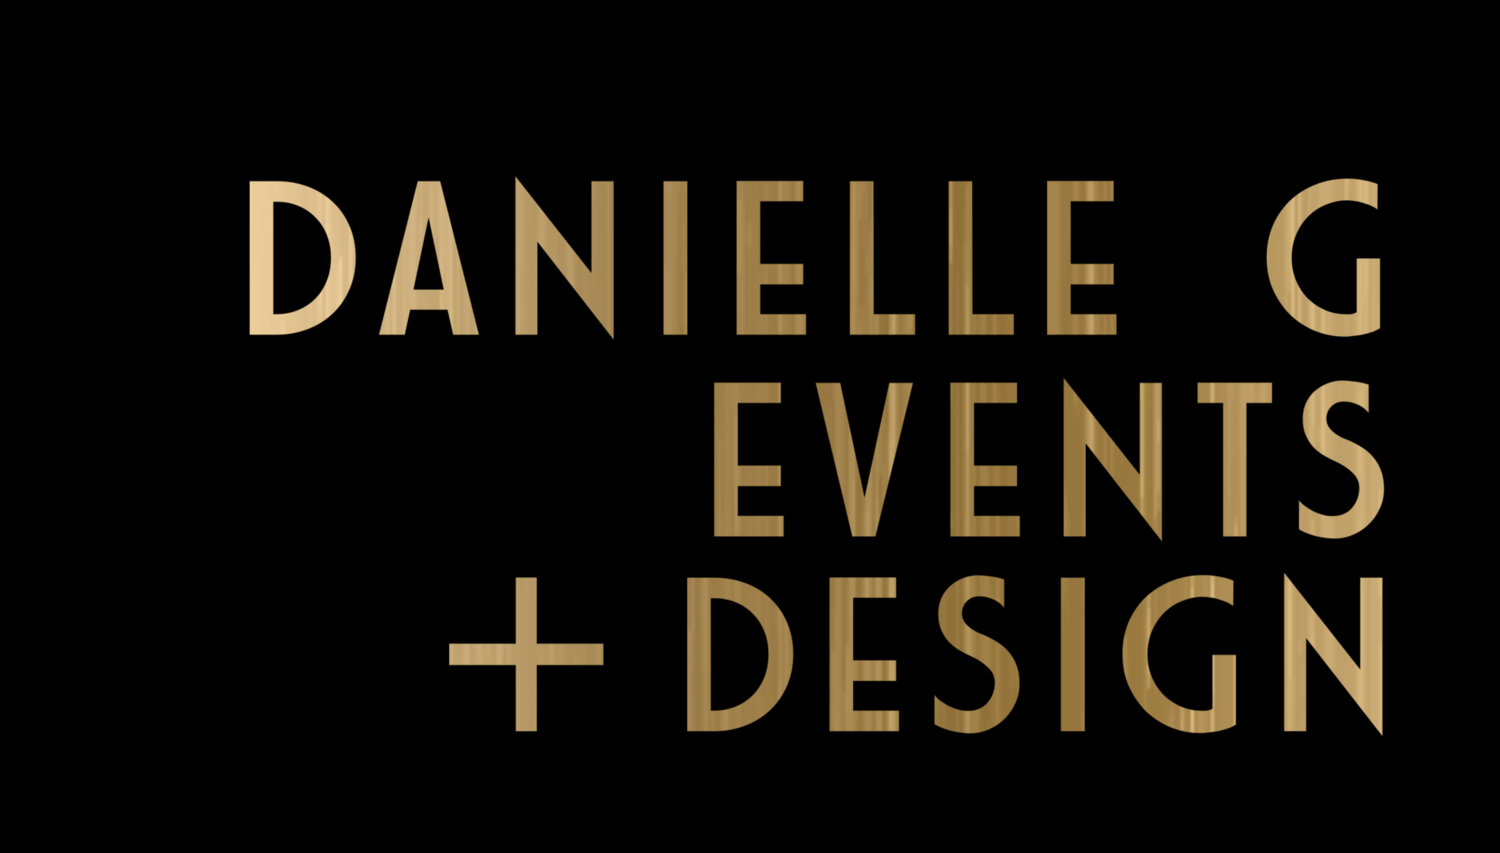 Danielle G Events + Design